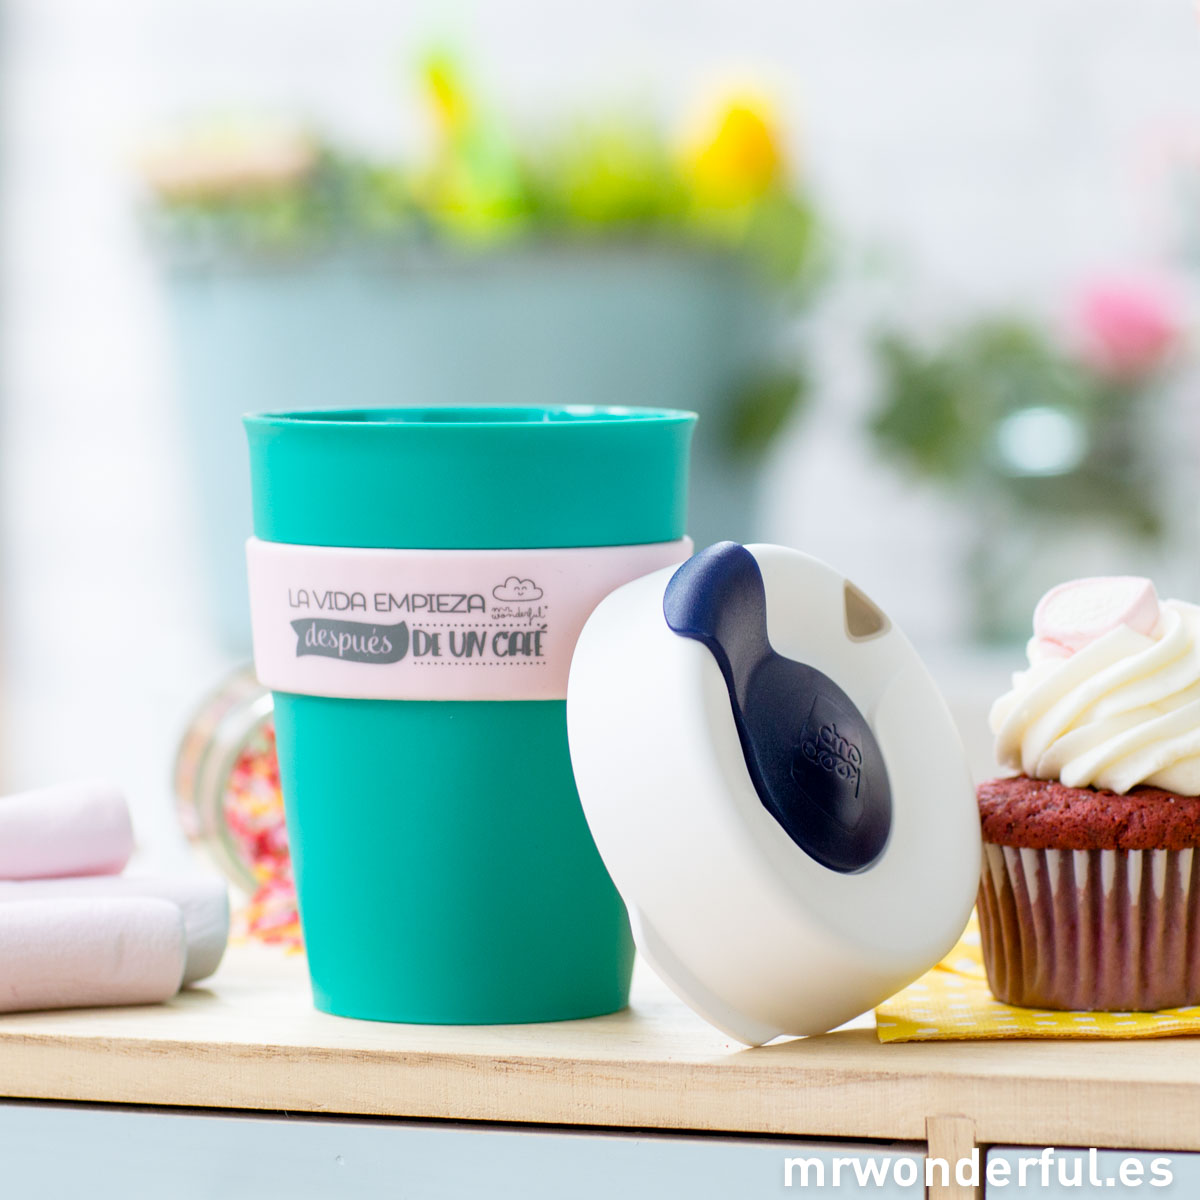 mrwonderful_8436547191604_KEEPCUP_013_Keepcup_La-vida-empieza-despues-de-un-cafe-M-Verde-33